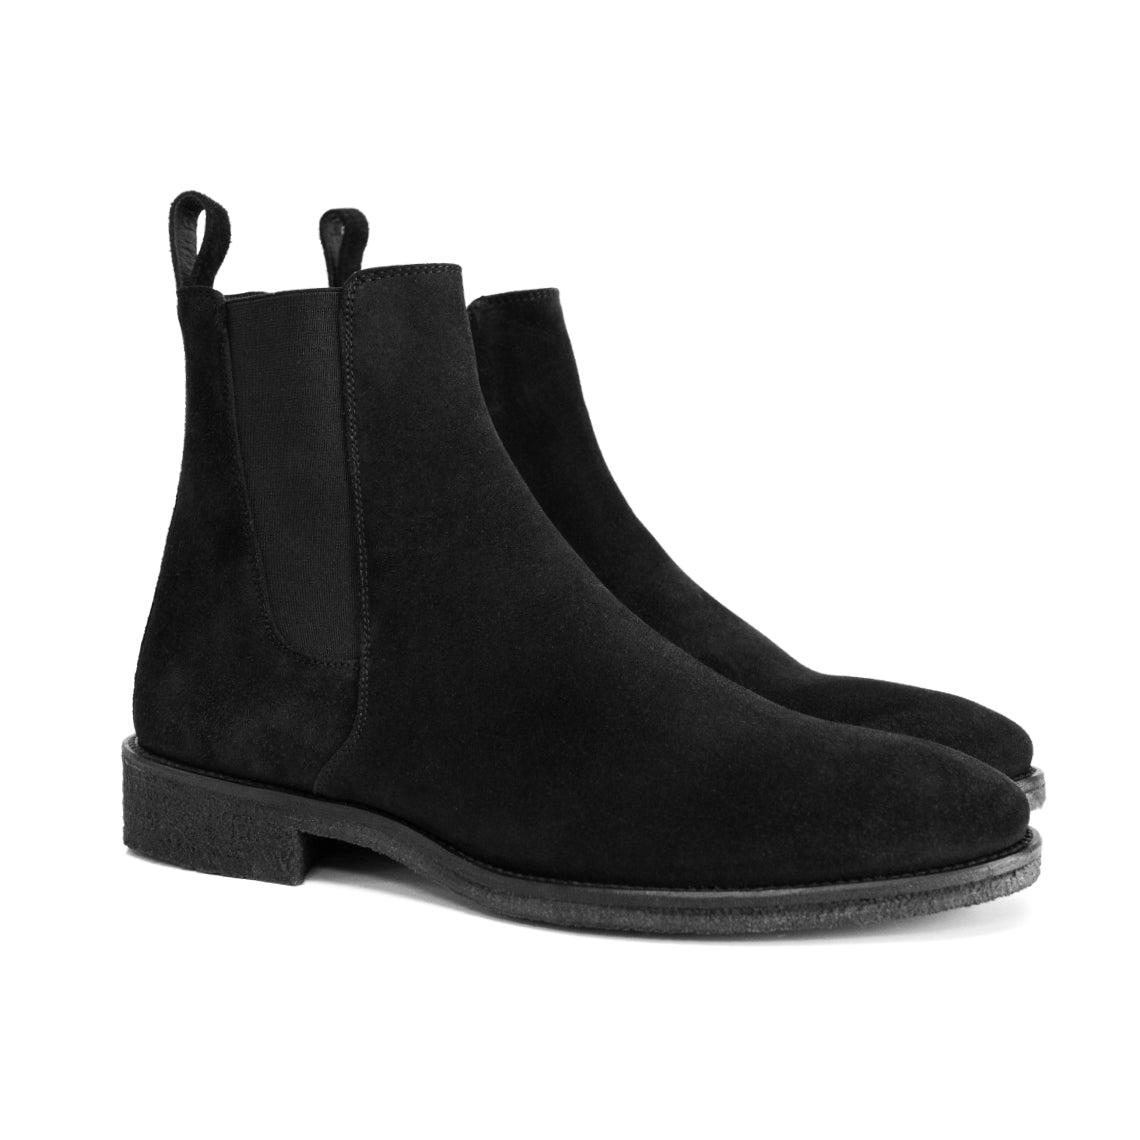 THE XAVIER CREPE CHELSEA BOOTS